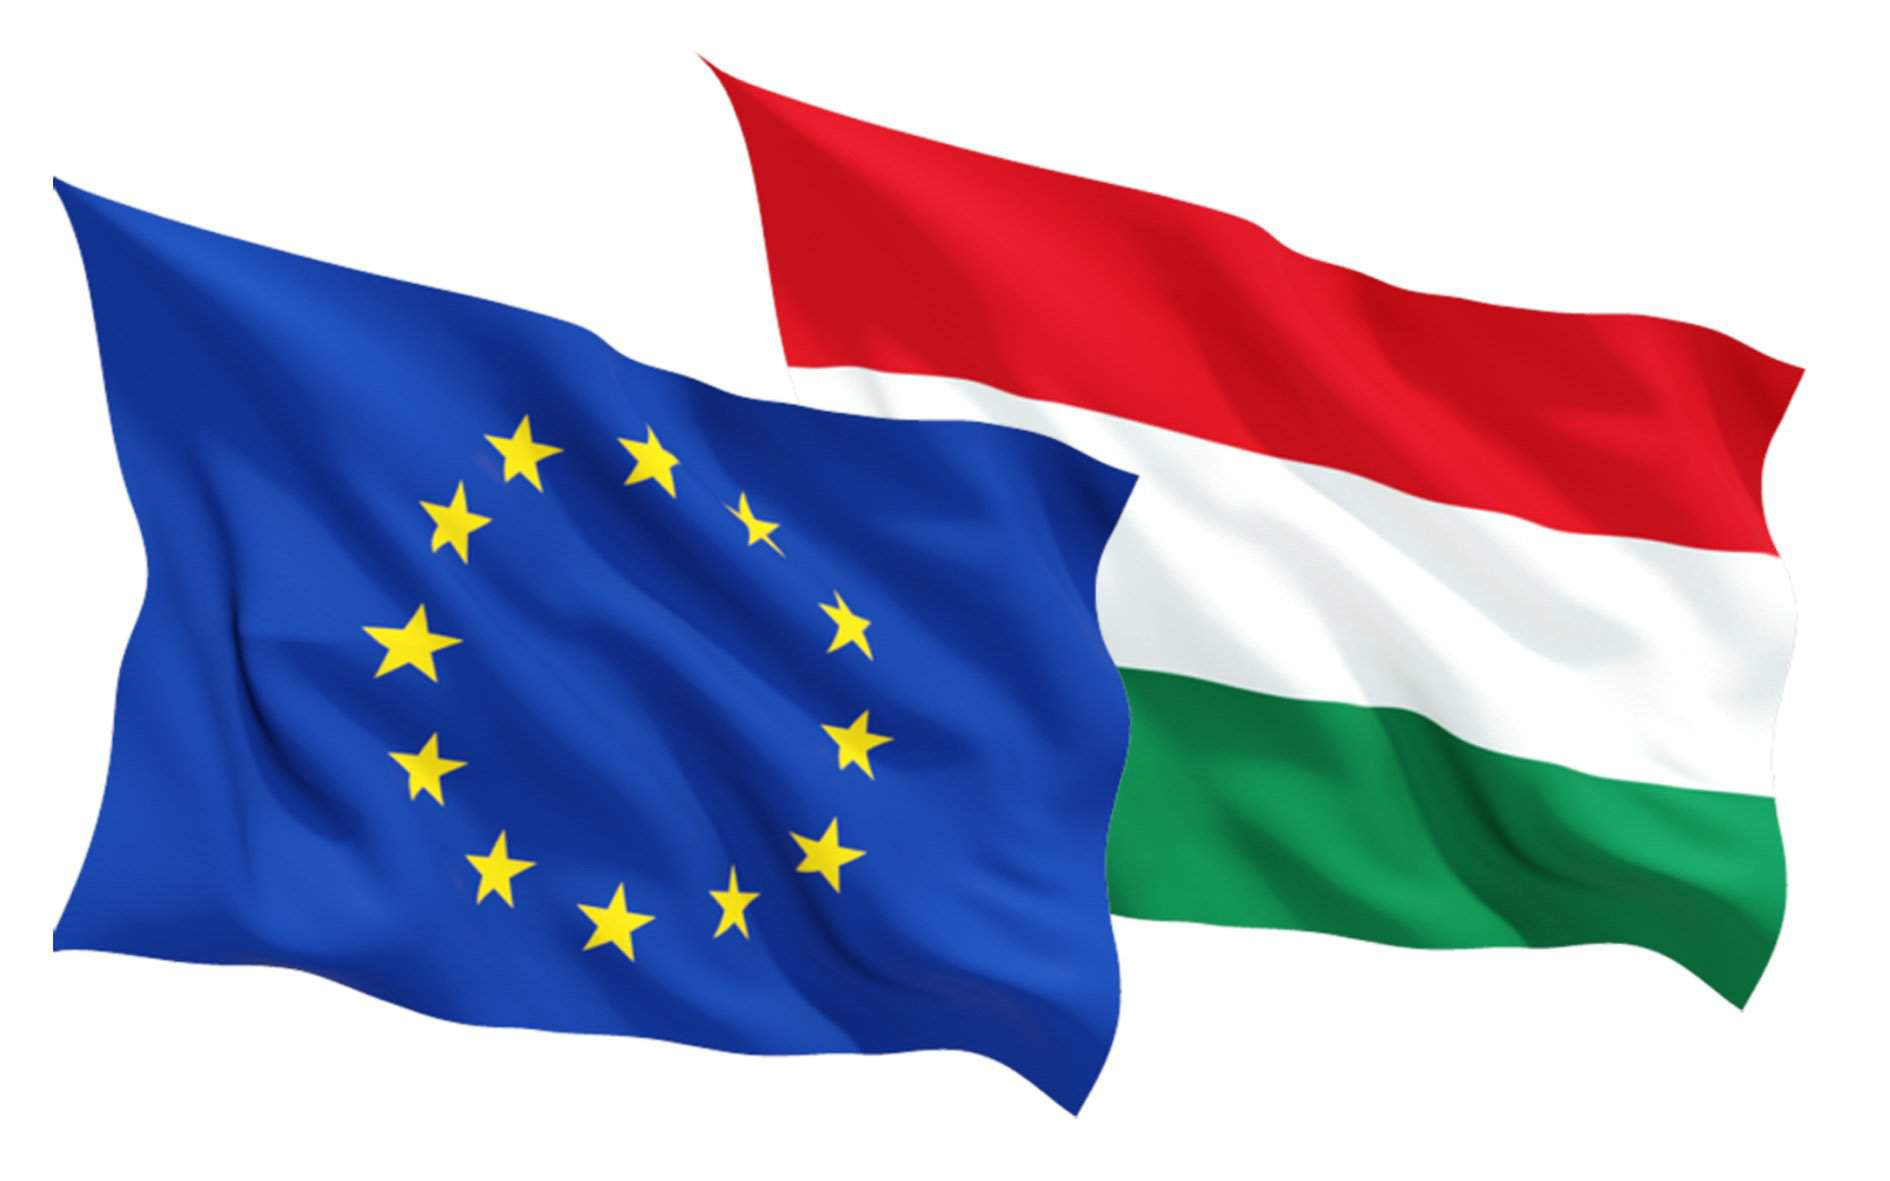 EU foreign ministers in Brussels – Sanctions against Russia 'failure', says Hungarian minister